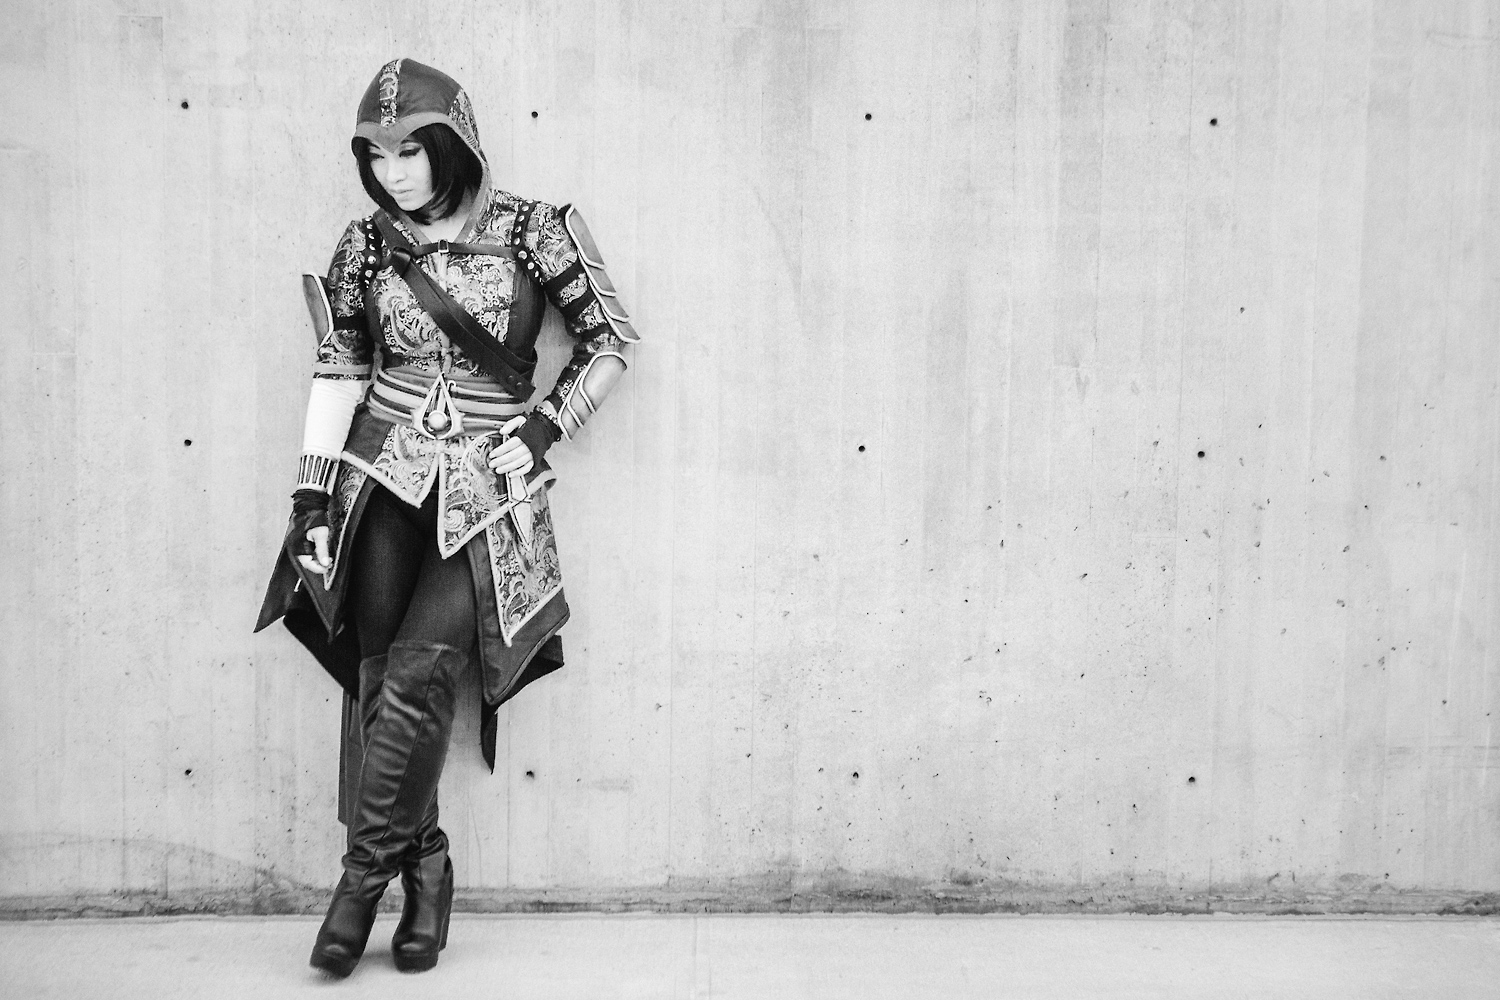 Yaya Han as Shao Jun of Assassin's Creed